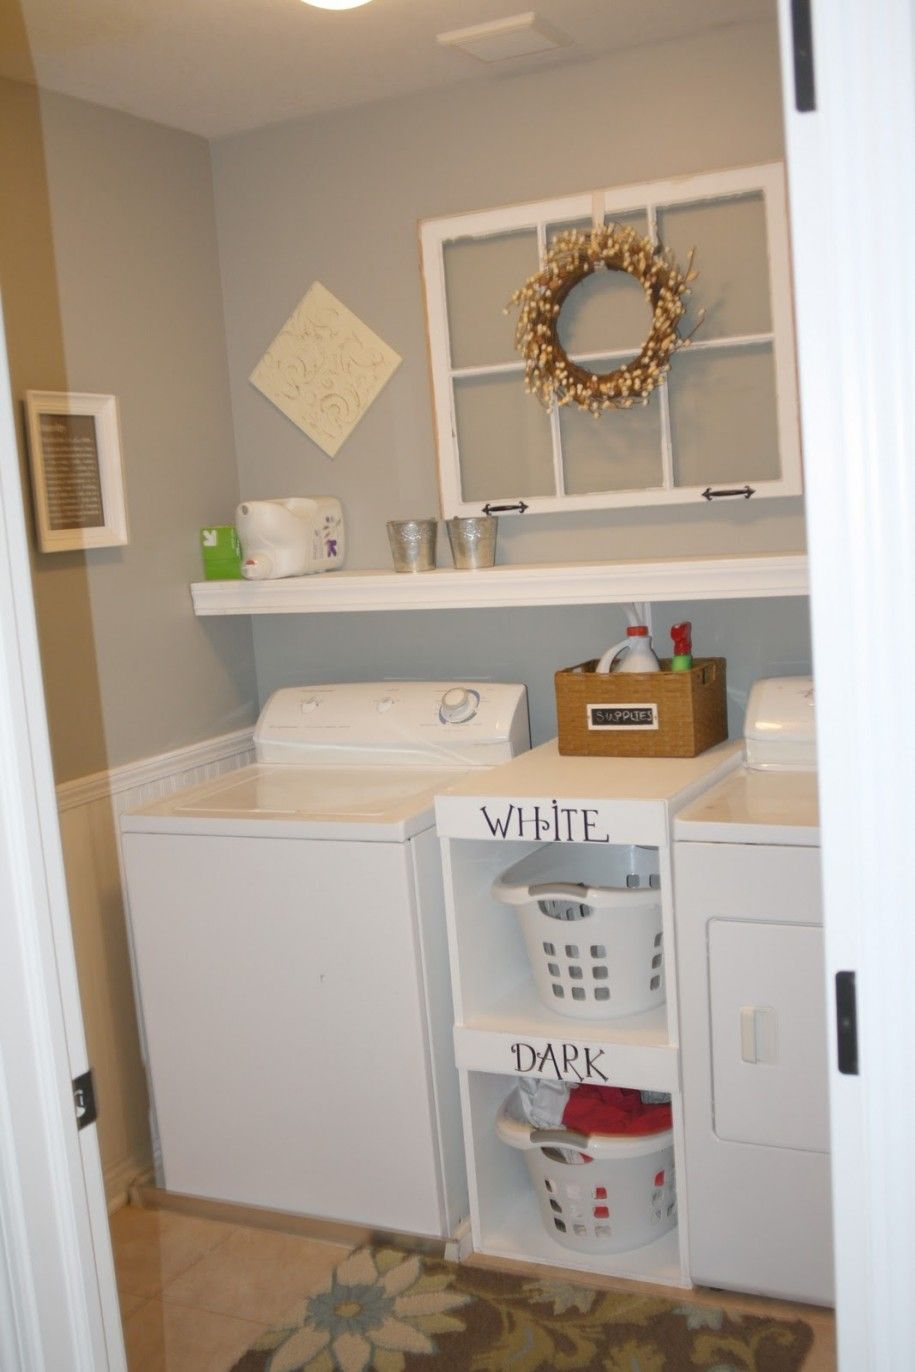 Laundry Room Wall Ideas Laundry Room Images  Simple Small Laundry Room With Shelving